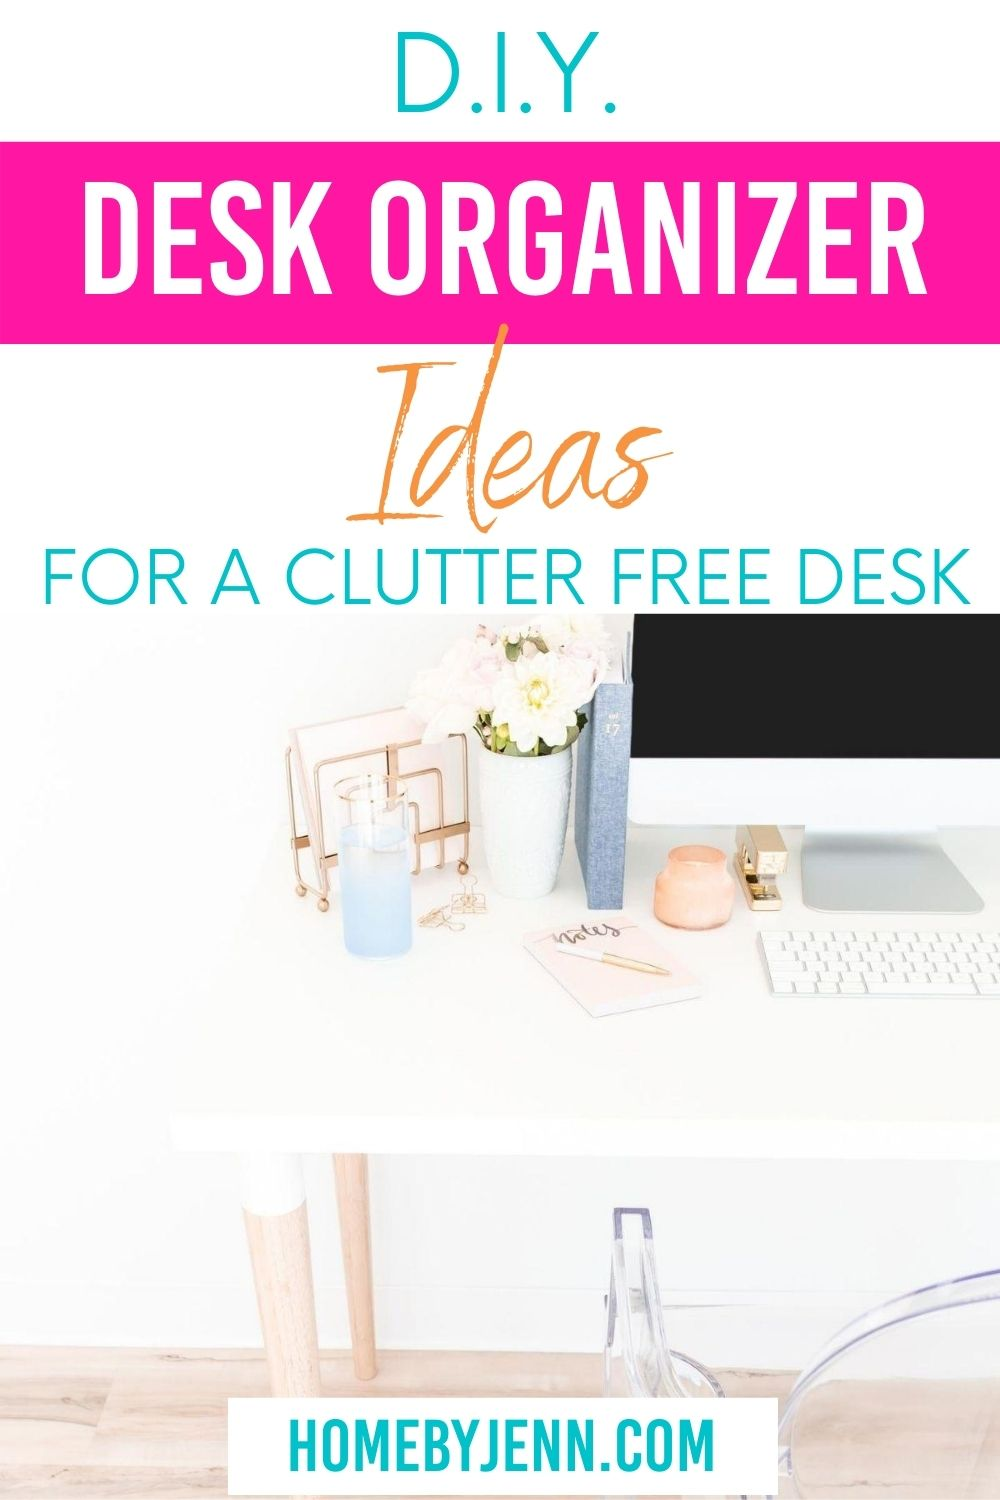 Having a clean and organized work area is key to helping with productivity. You can save money on your home organization by doing it yourself. Get some DIY desk organizer ideas to help you create a work space that stays clean and organized. #DIY #Deskorganizerideas #organizingideas #cleaning #organized via @homebyjenn